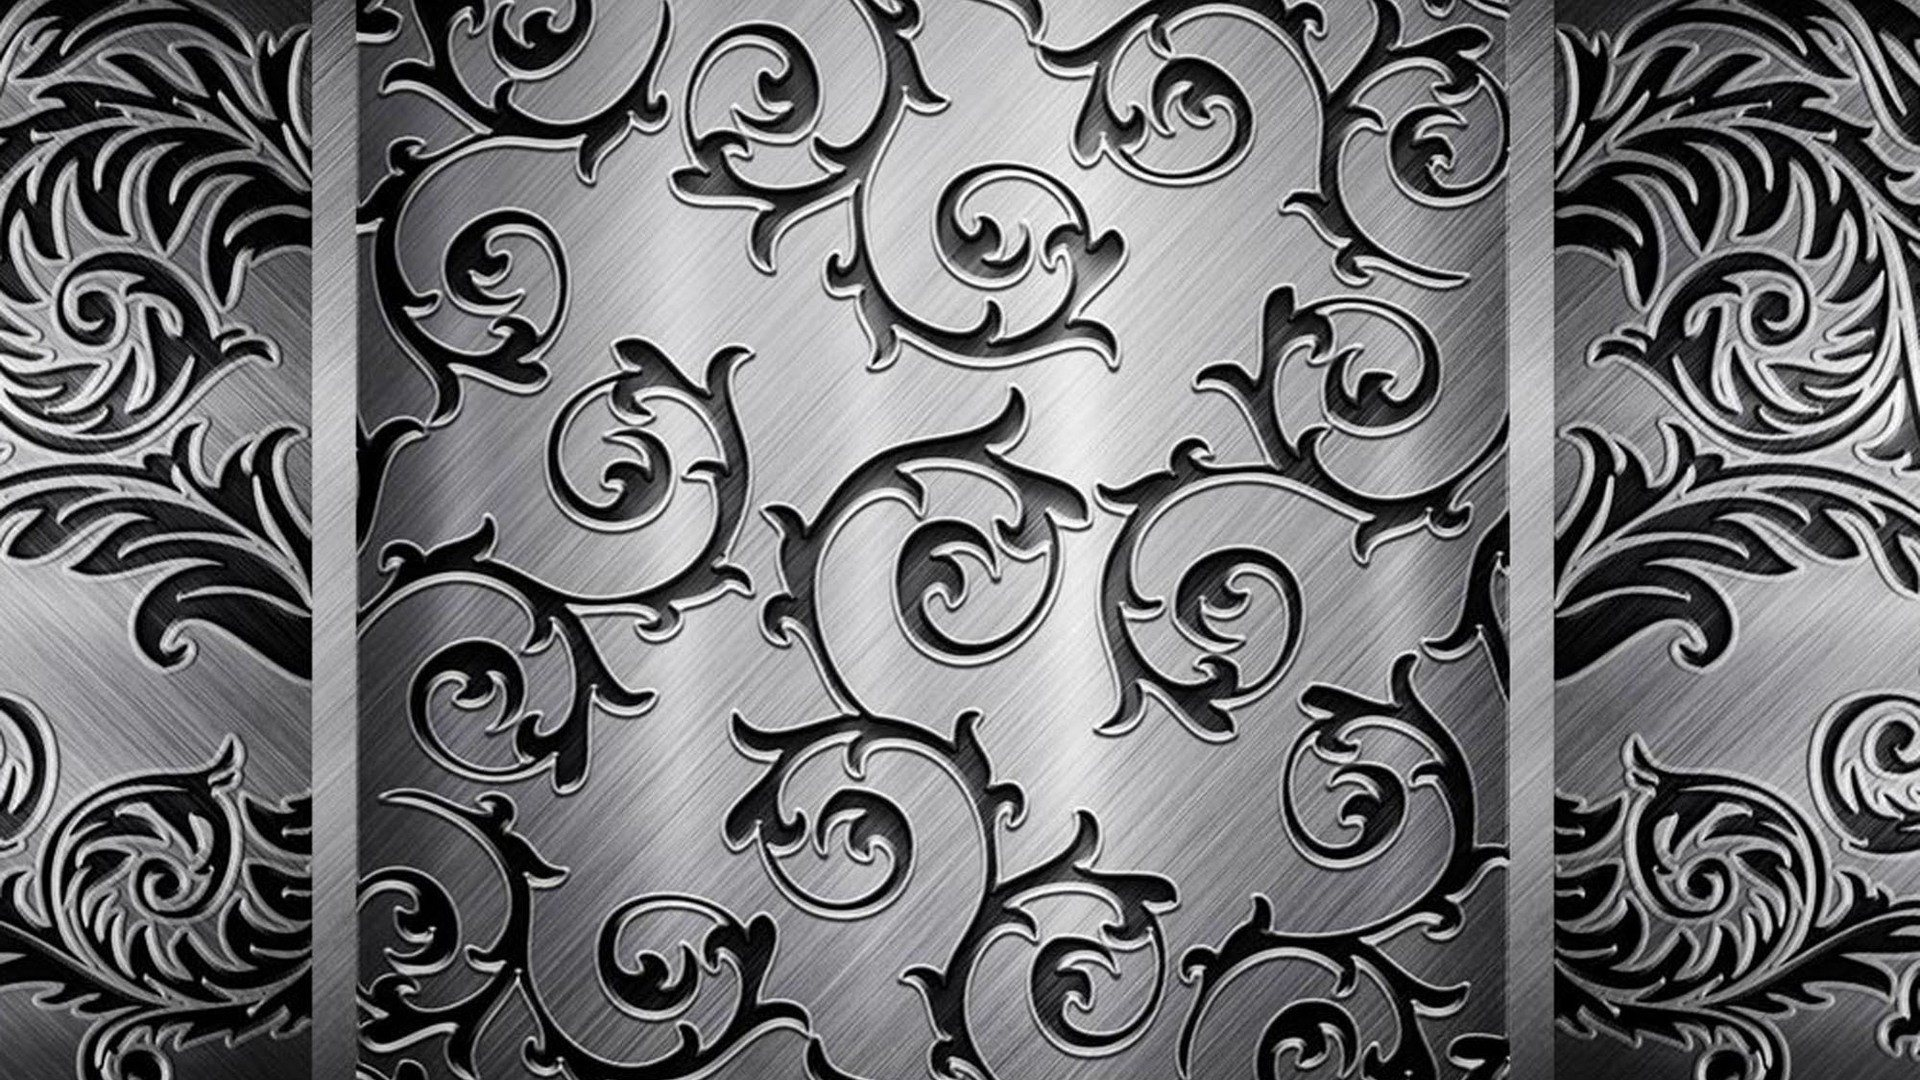 Design Patterns Wallpaper Black And White   Crazy 4 images 1920x1080